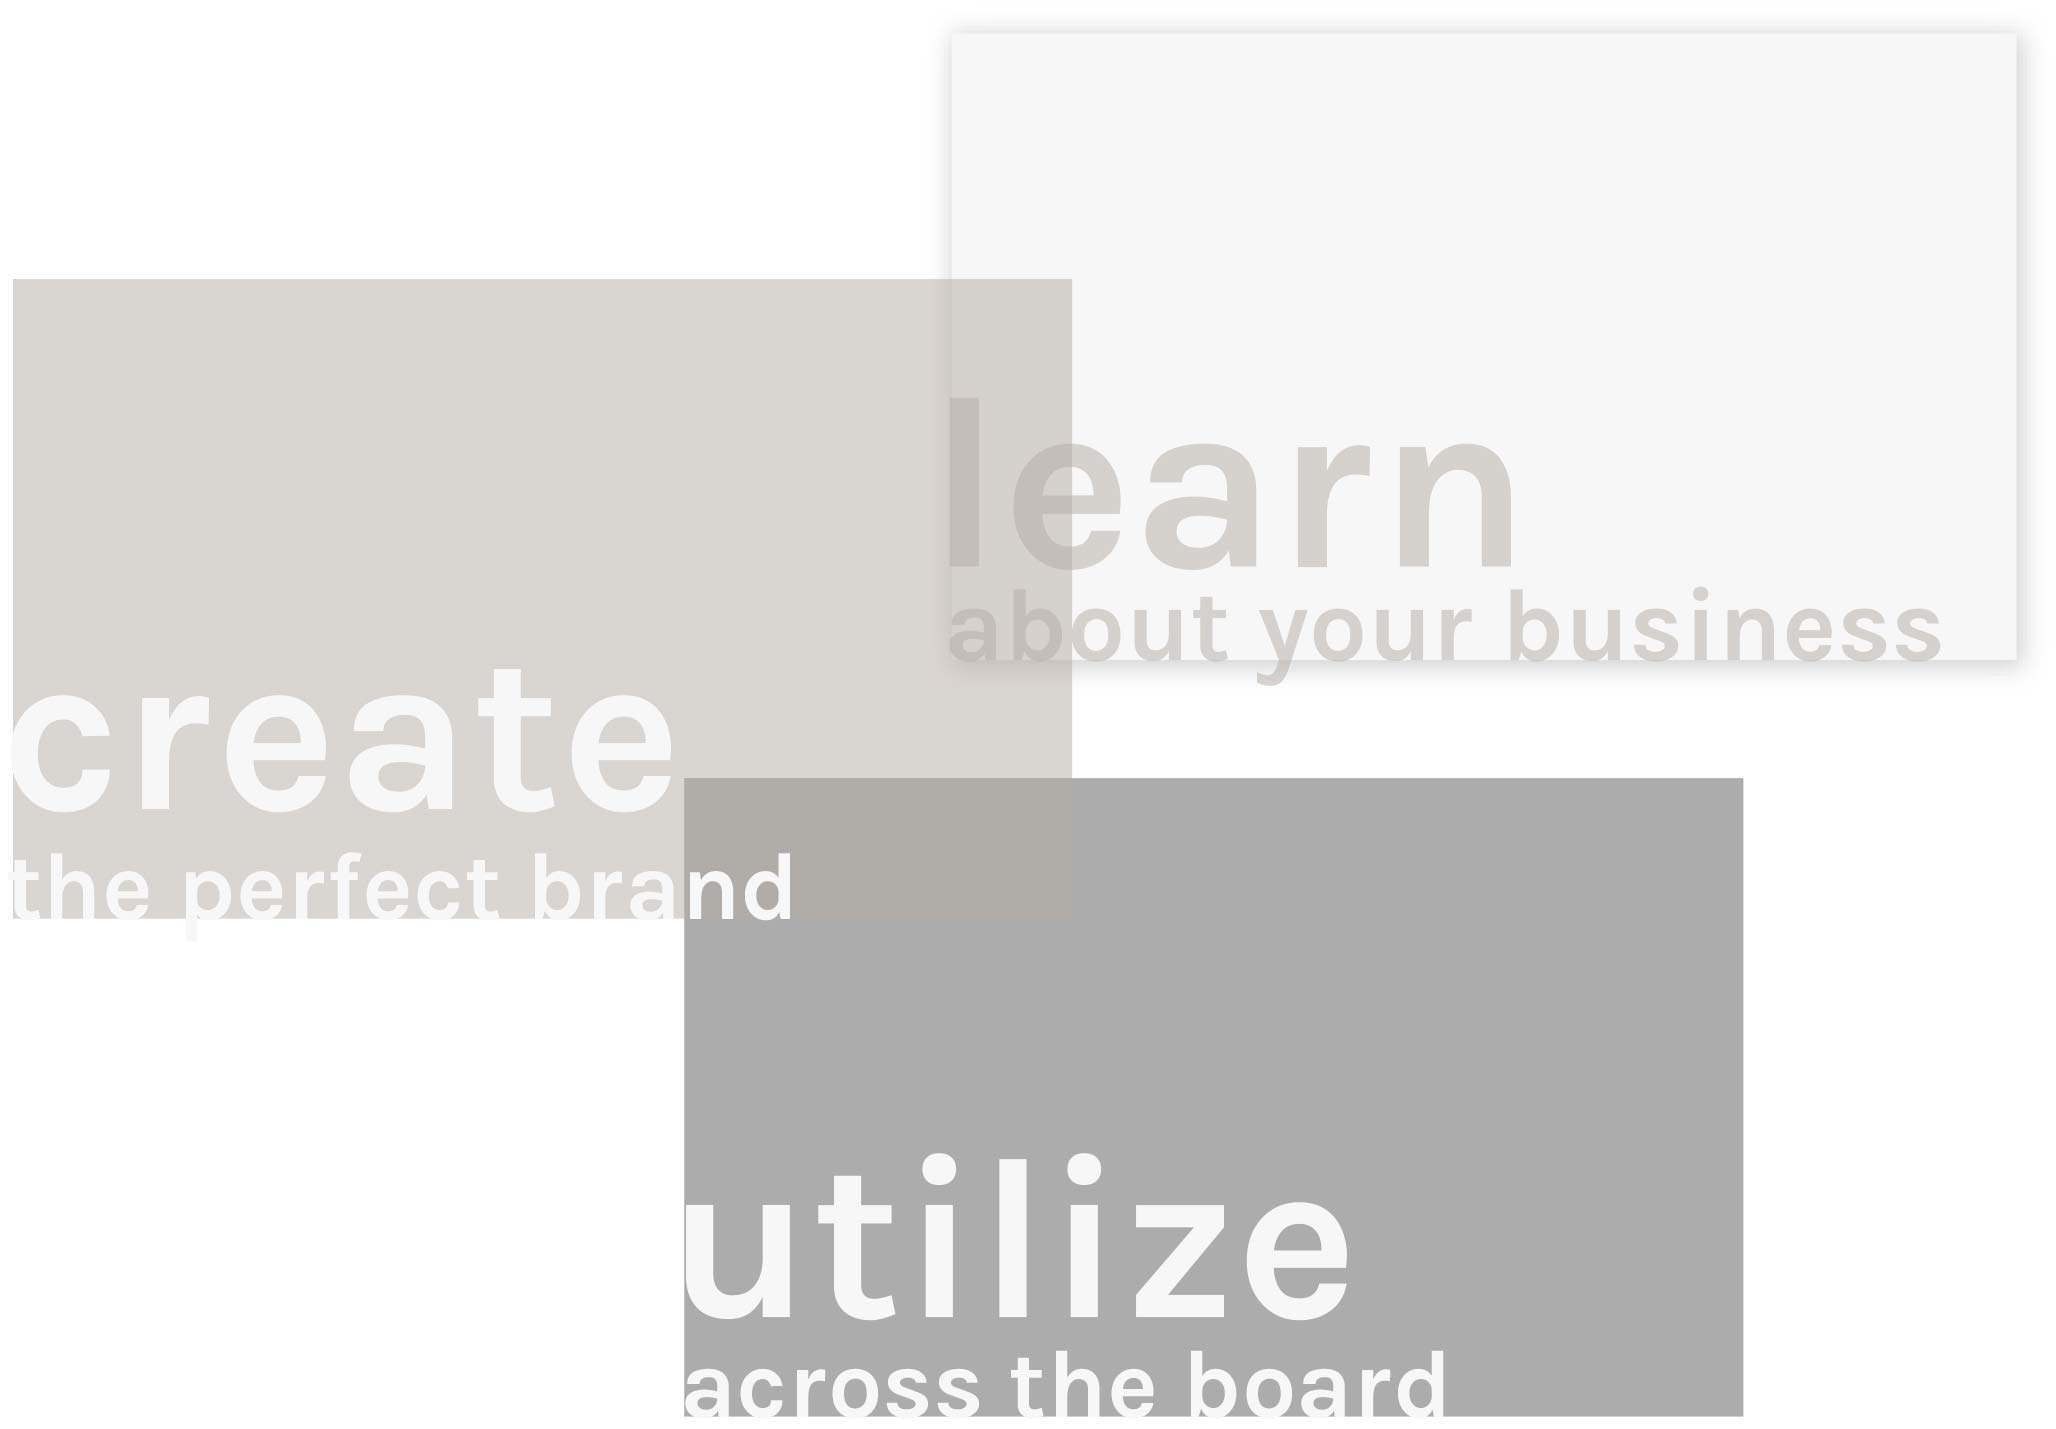 graphic showcasing three words explaining Dog Ear's logo design process: learn, create and implement